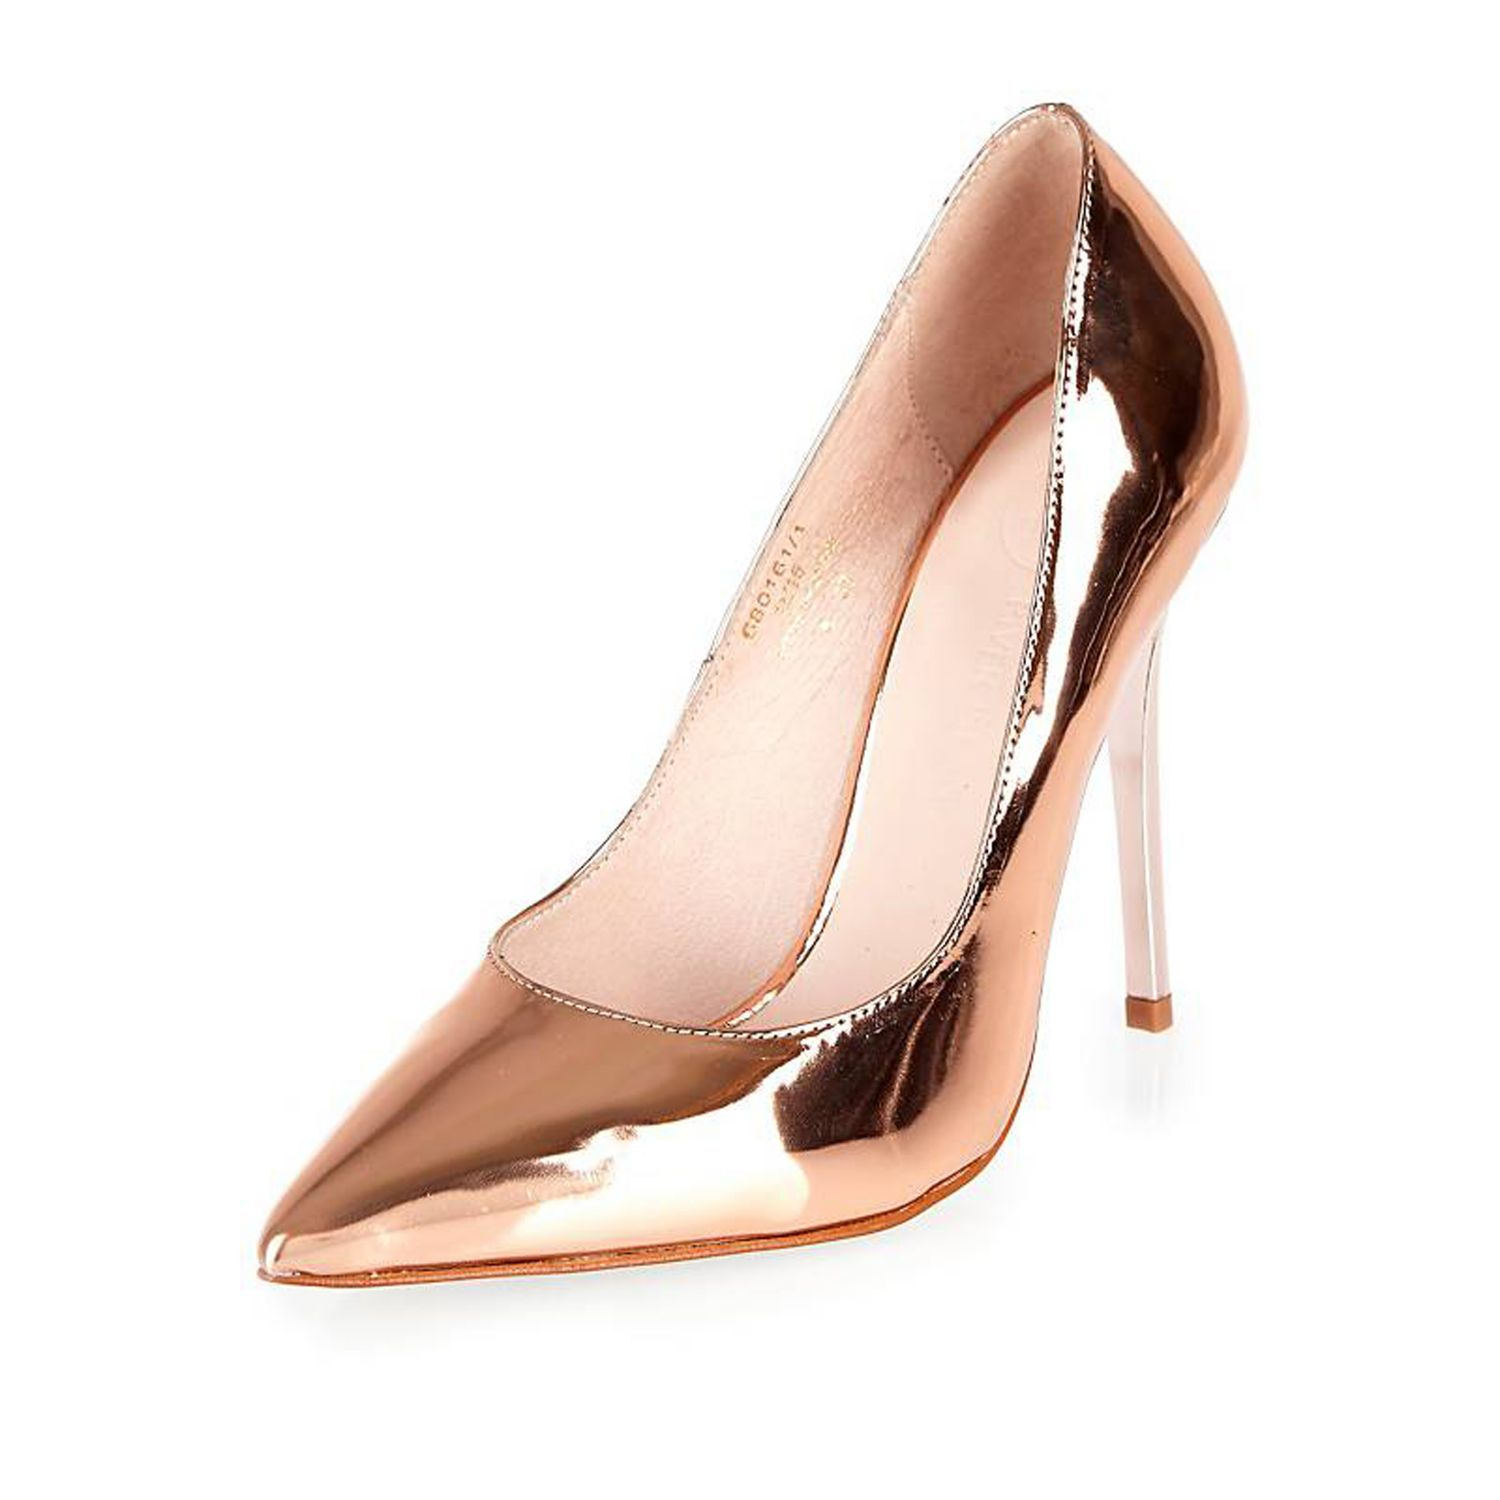 Pink Metallic Heels - Is Heel